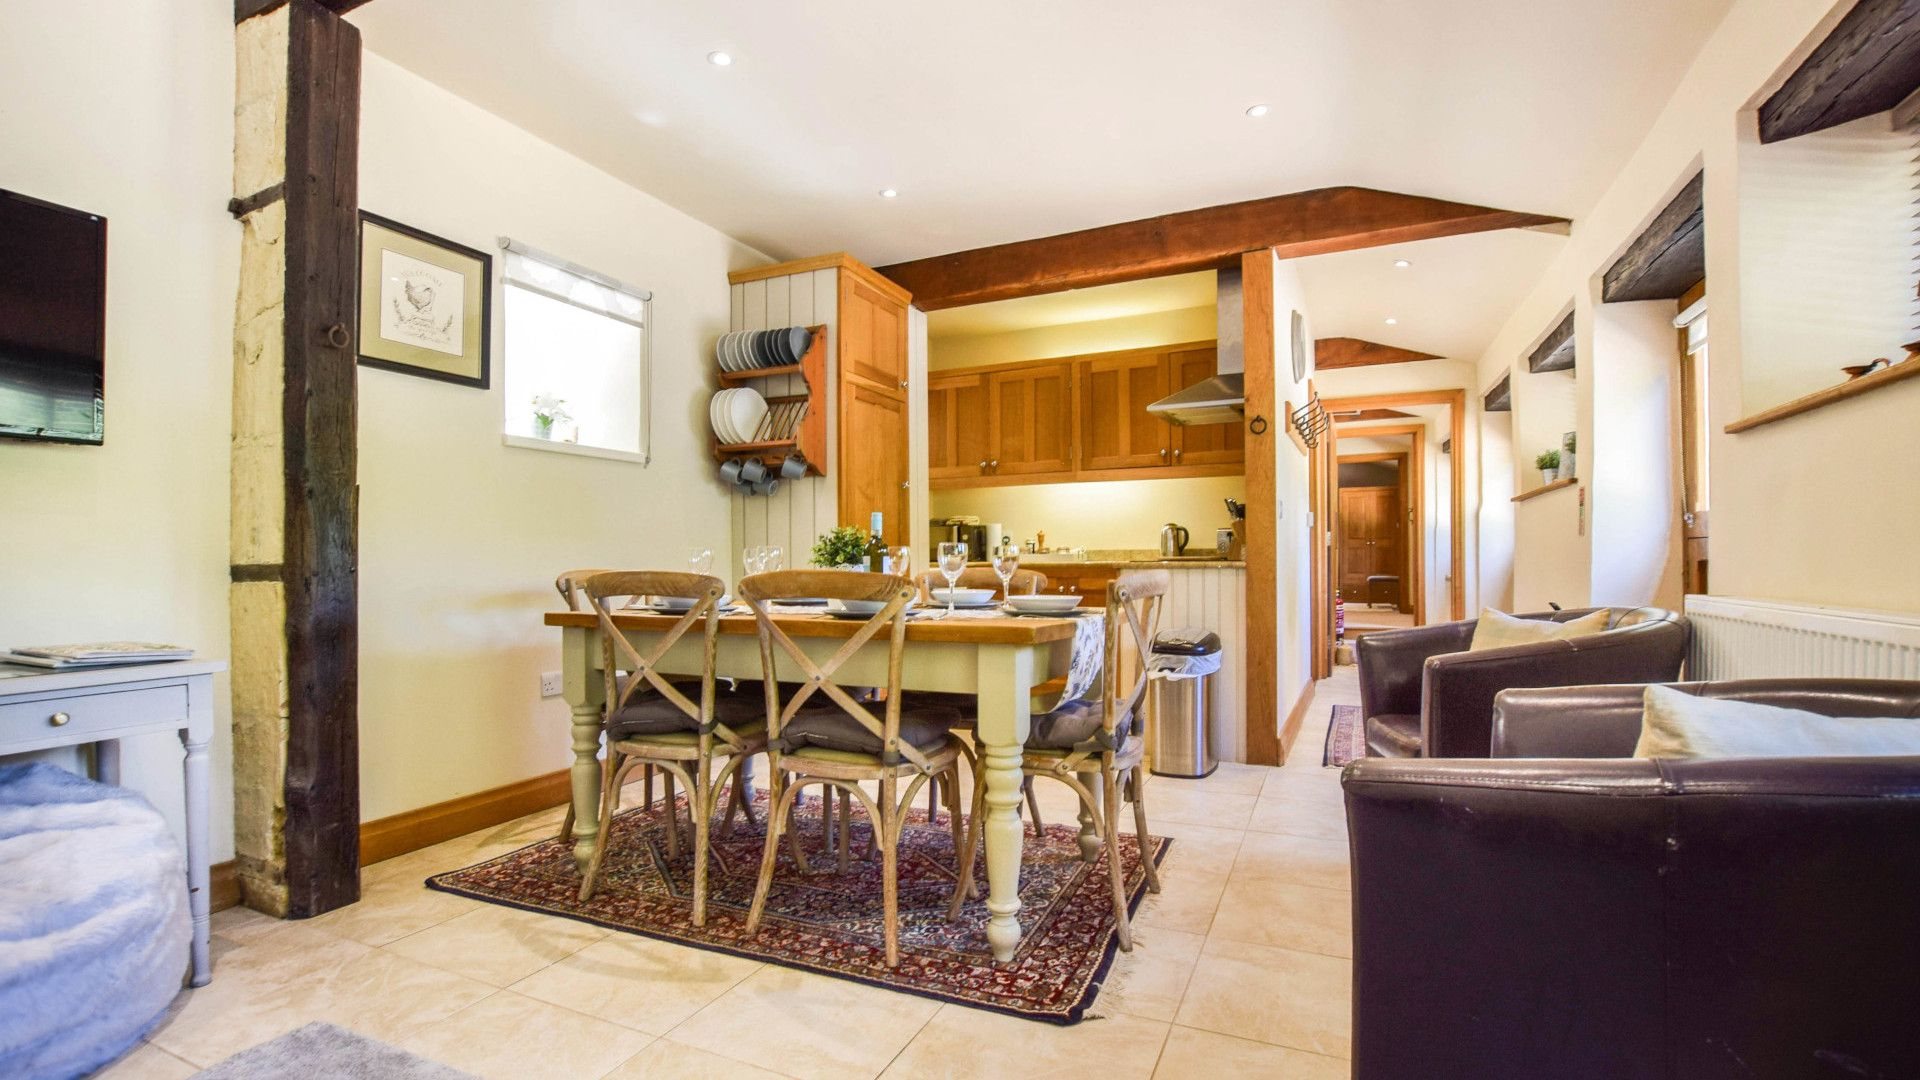 Kitchen, living and dining areas, Stable Cottage, Bolthole Retreats